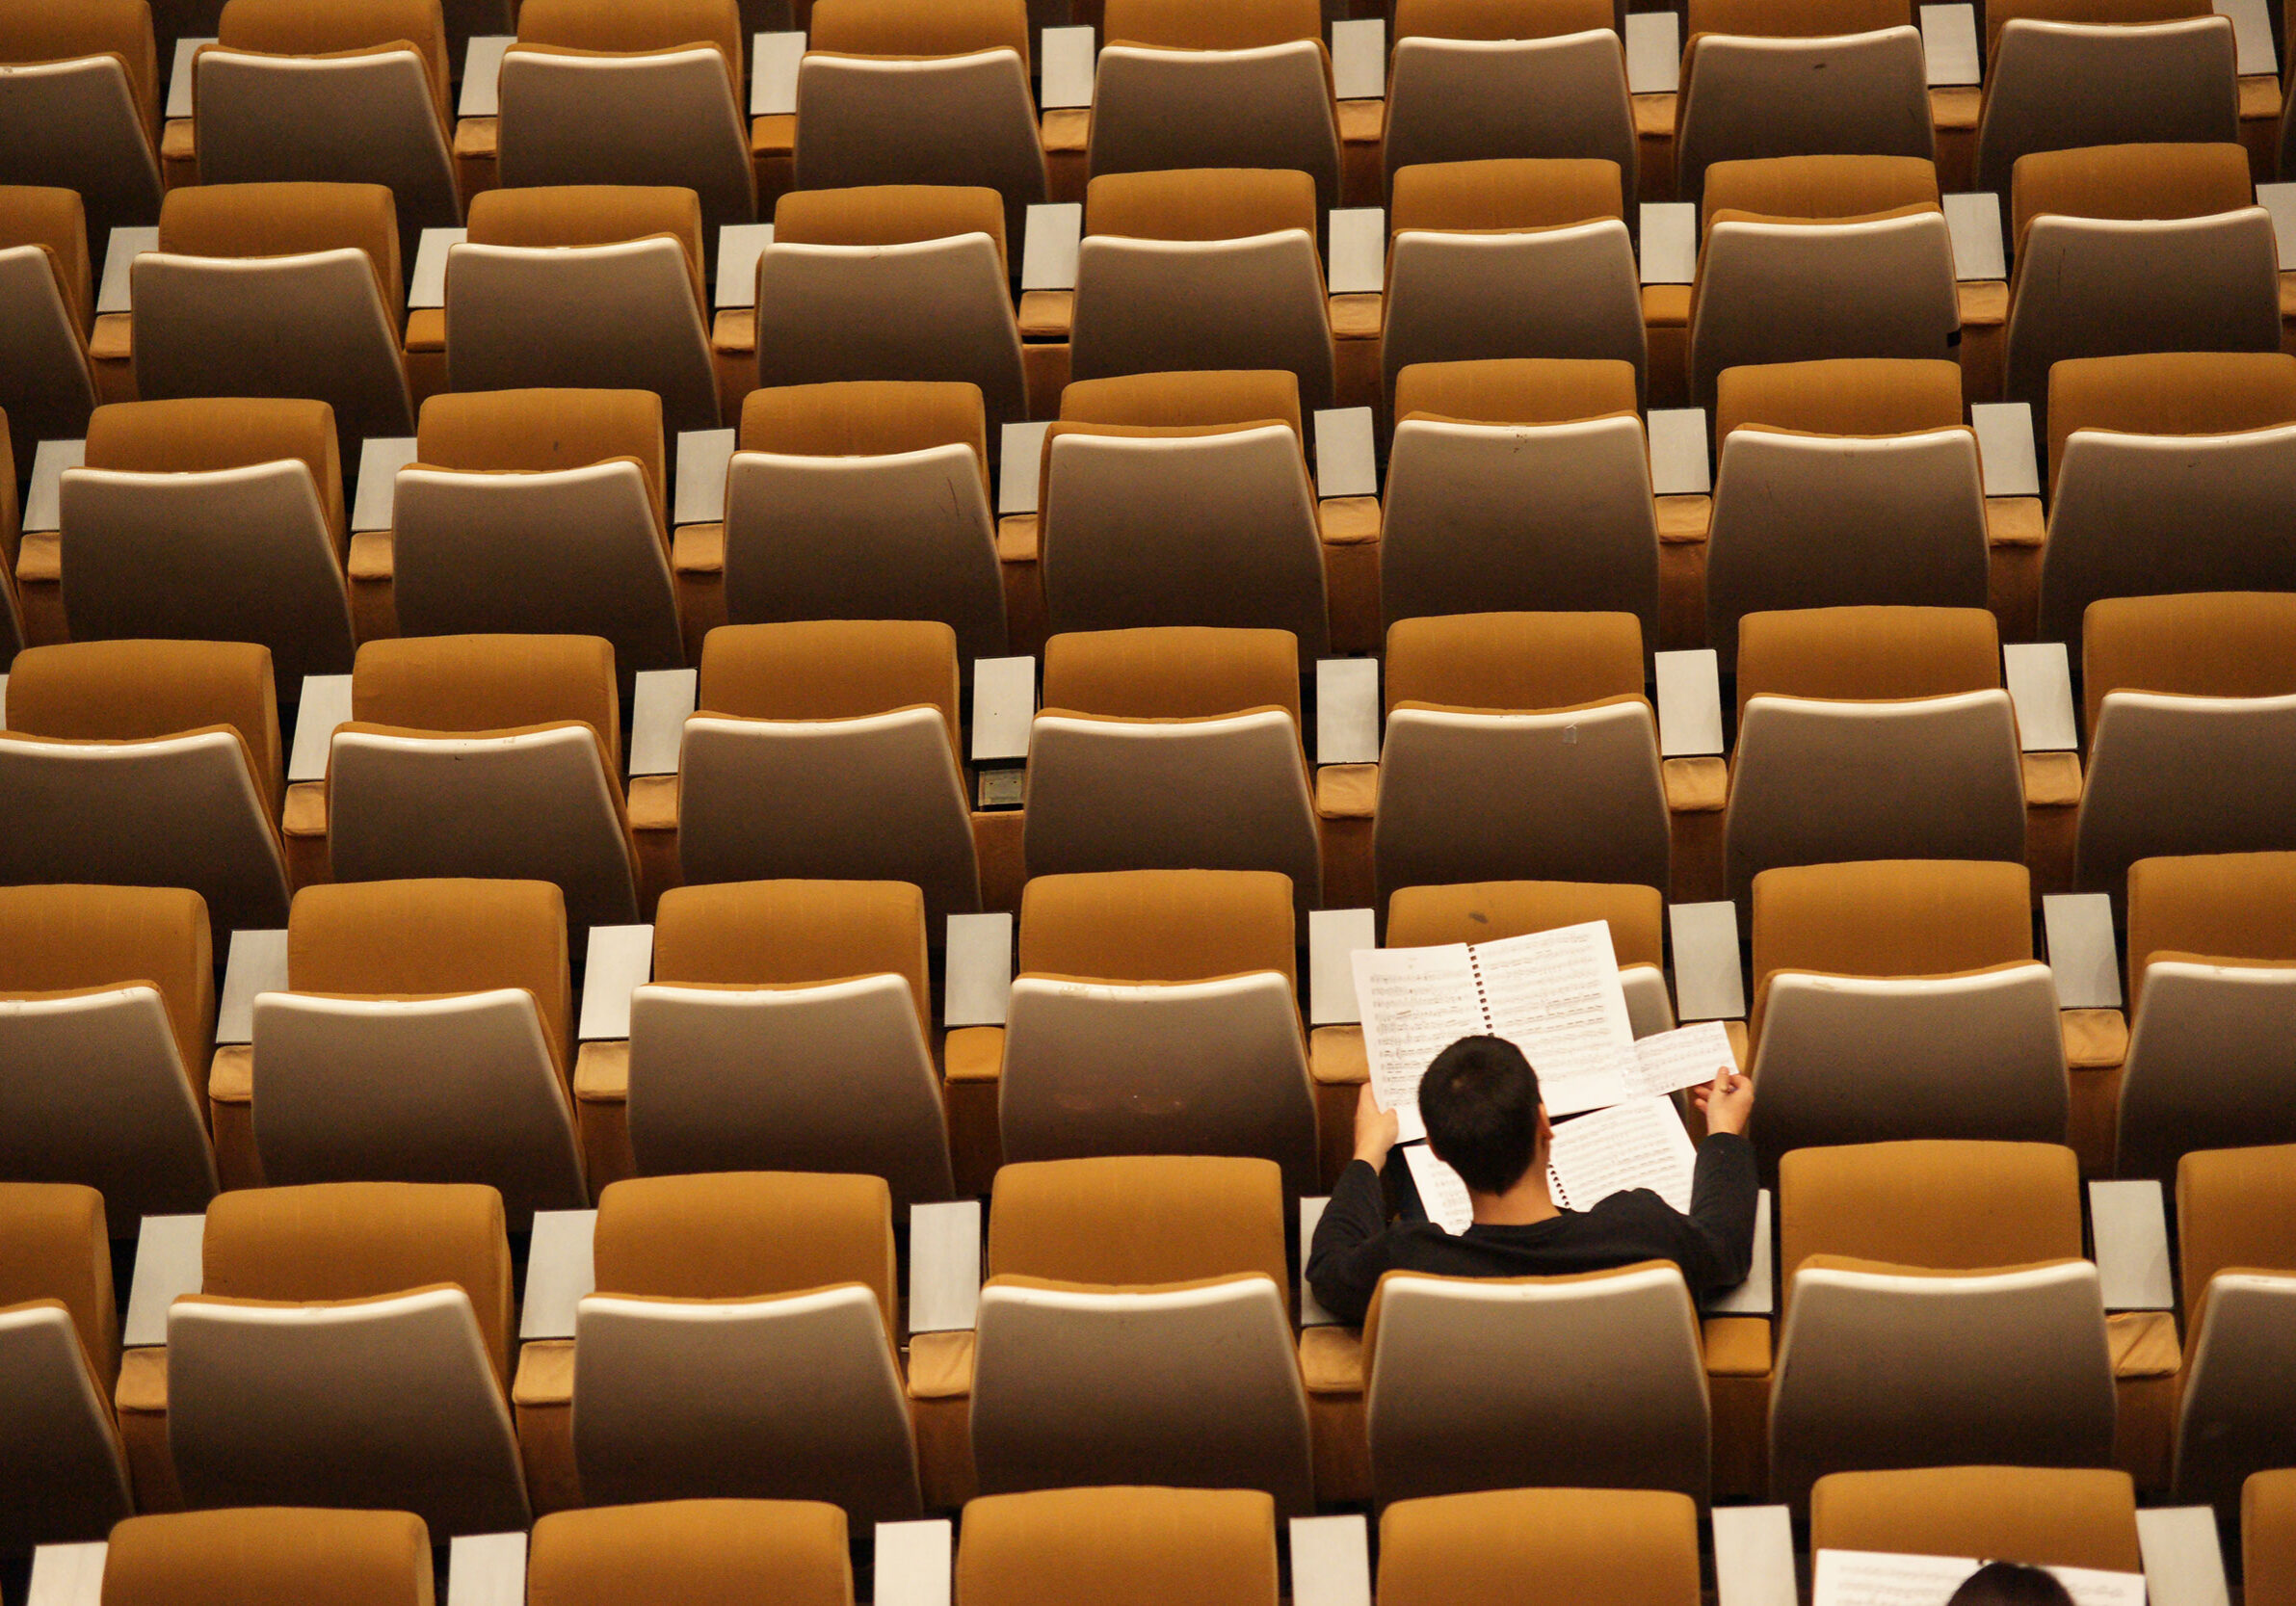 Man sitting in a row of orange chairs.